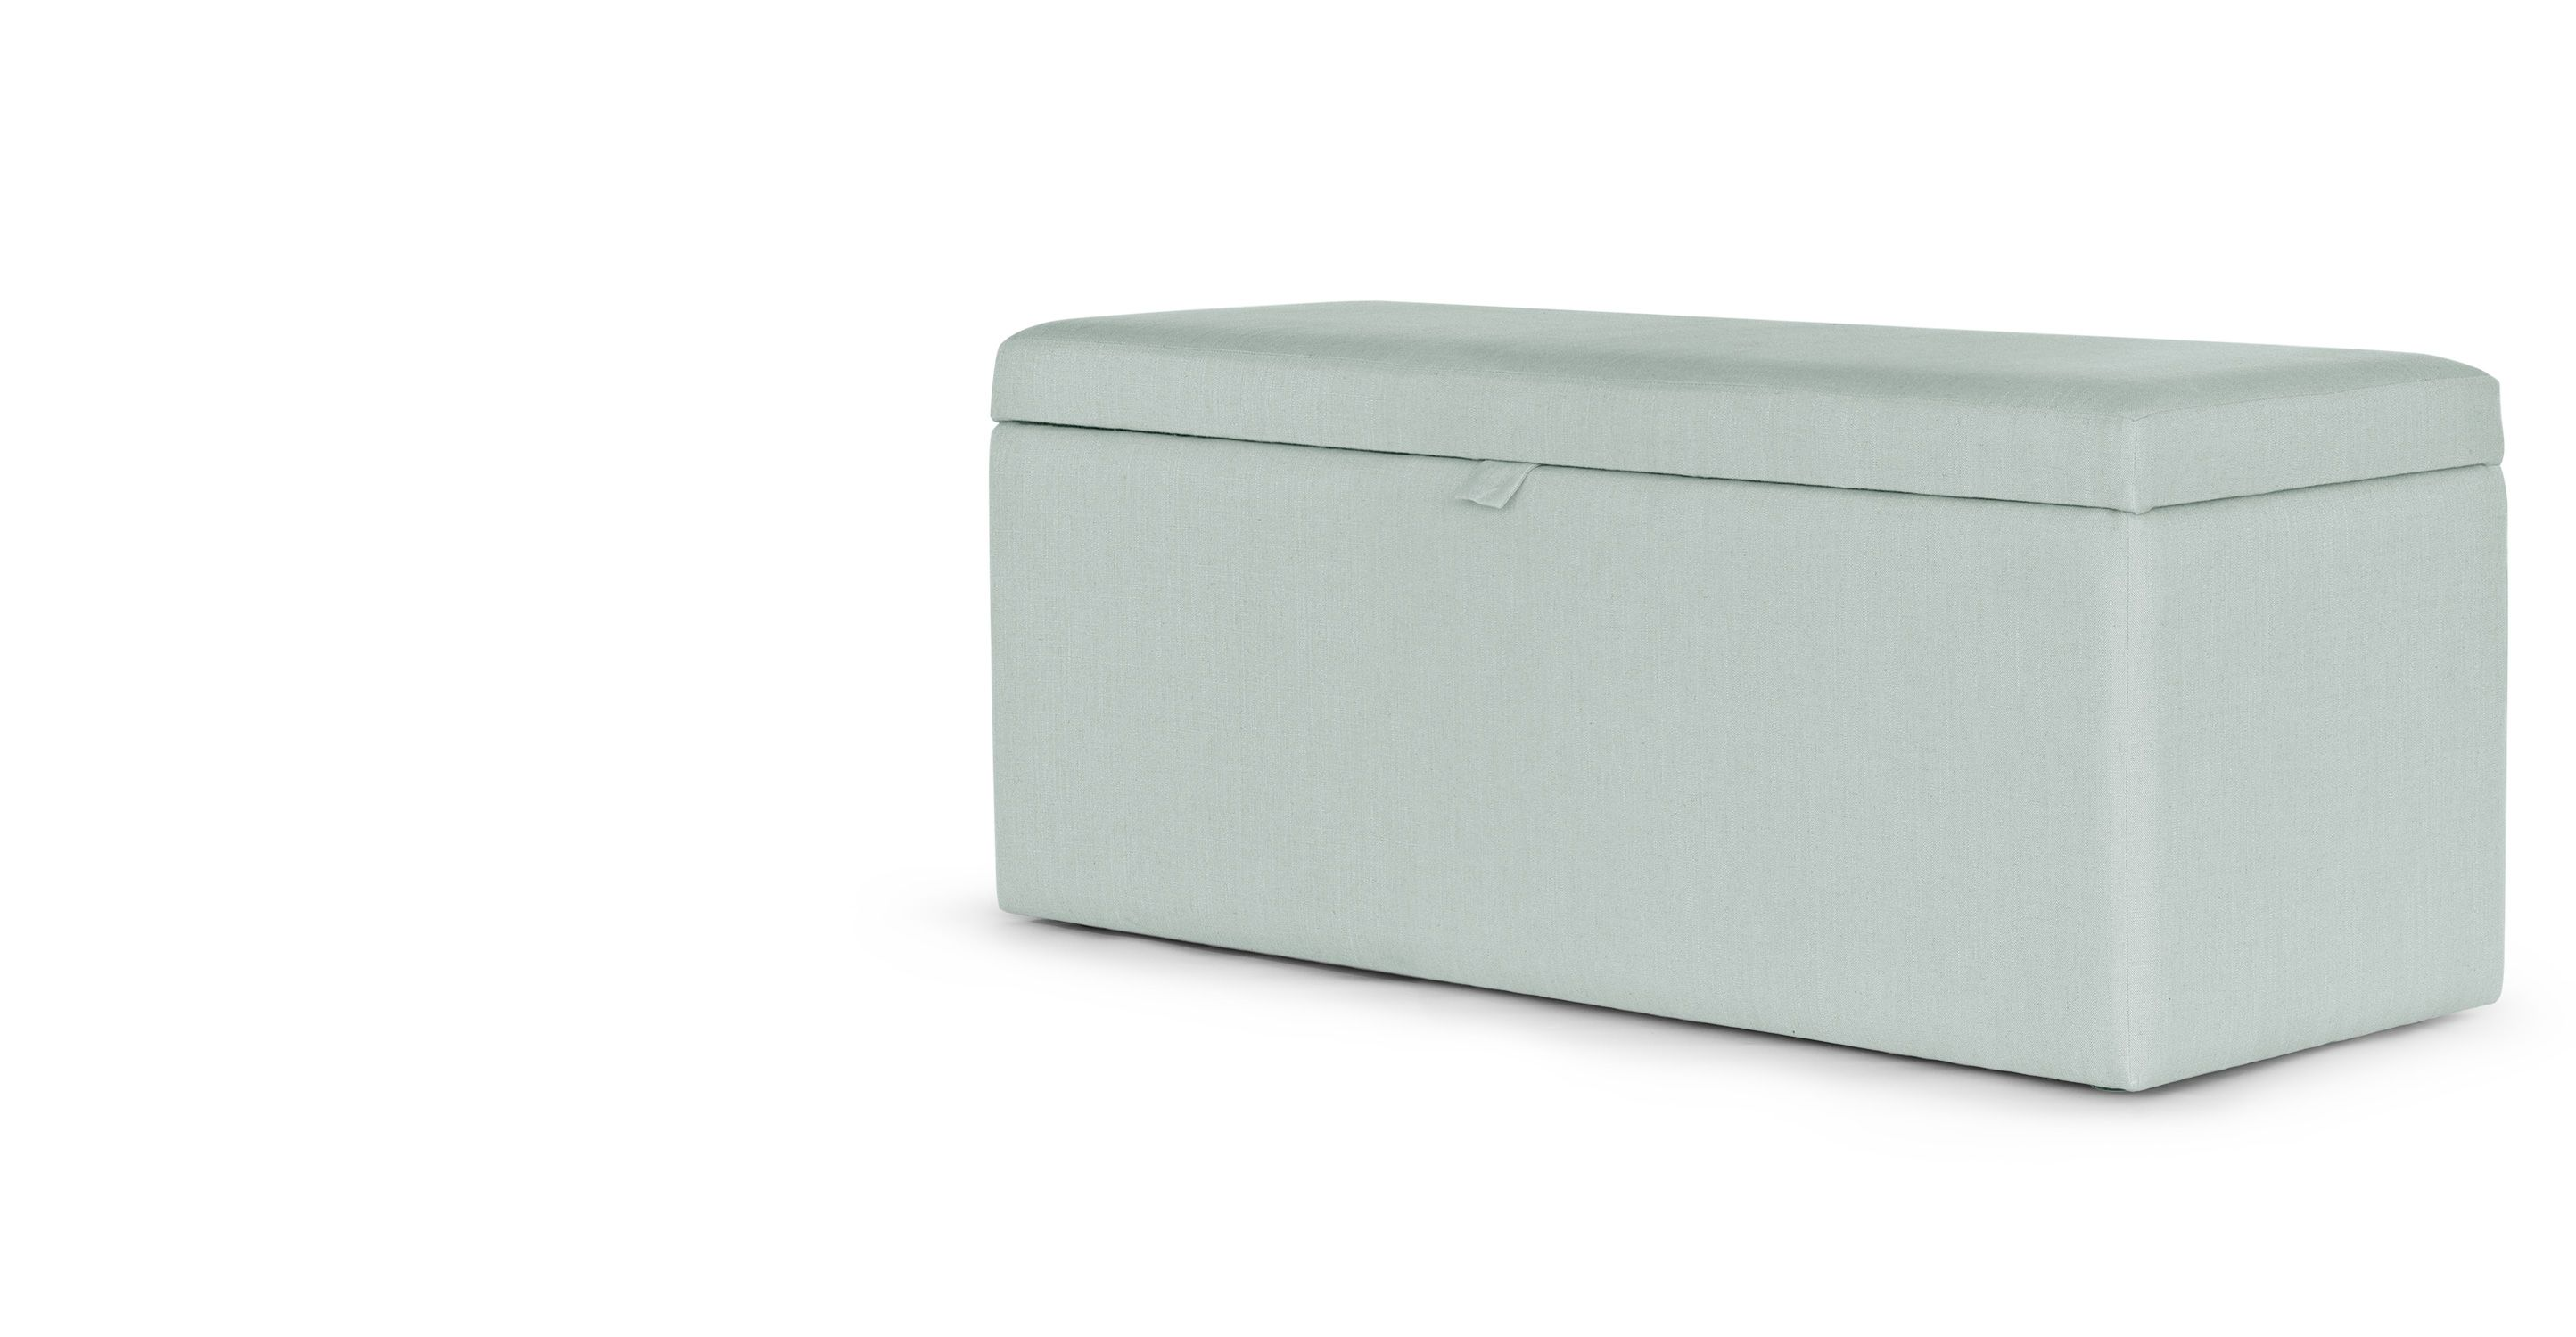 Gepolsterte Sitzbank Mit Stauraum Capri Upholstered Storage Bench Cambridge Blue For The Home